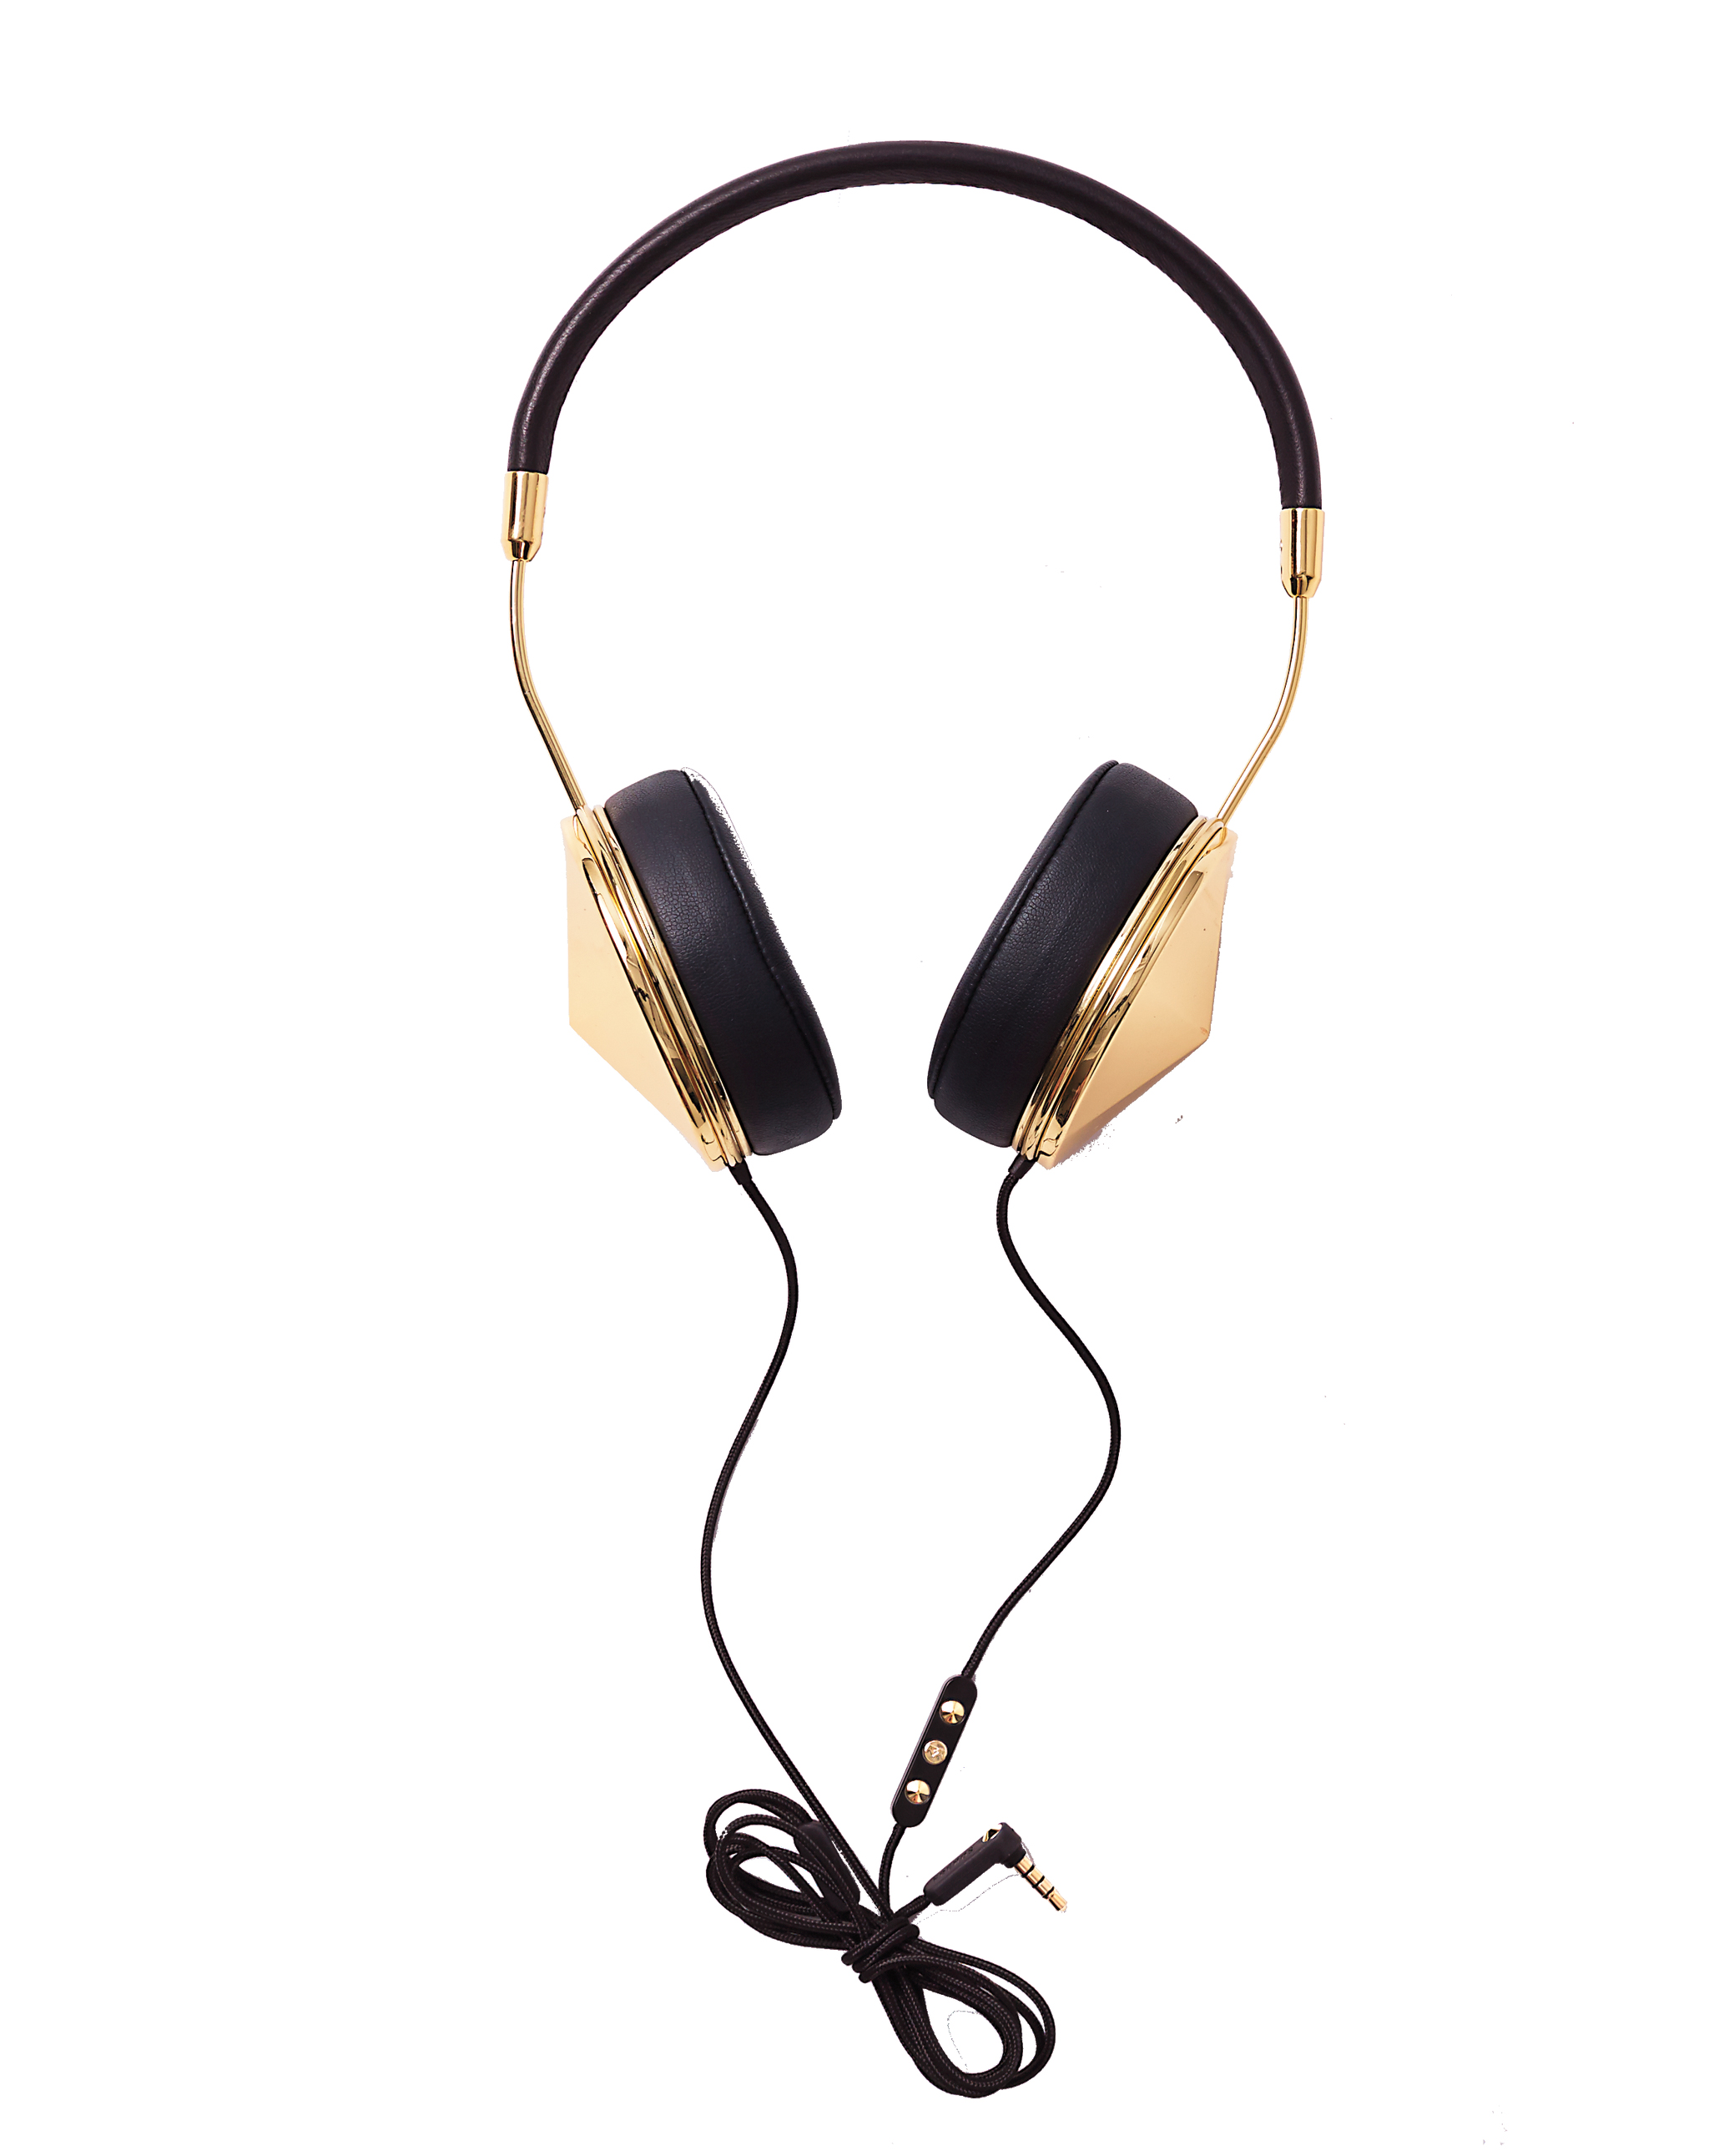 gold-headphones-072-d111219.jpg